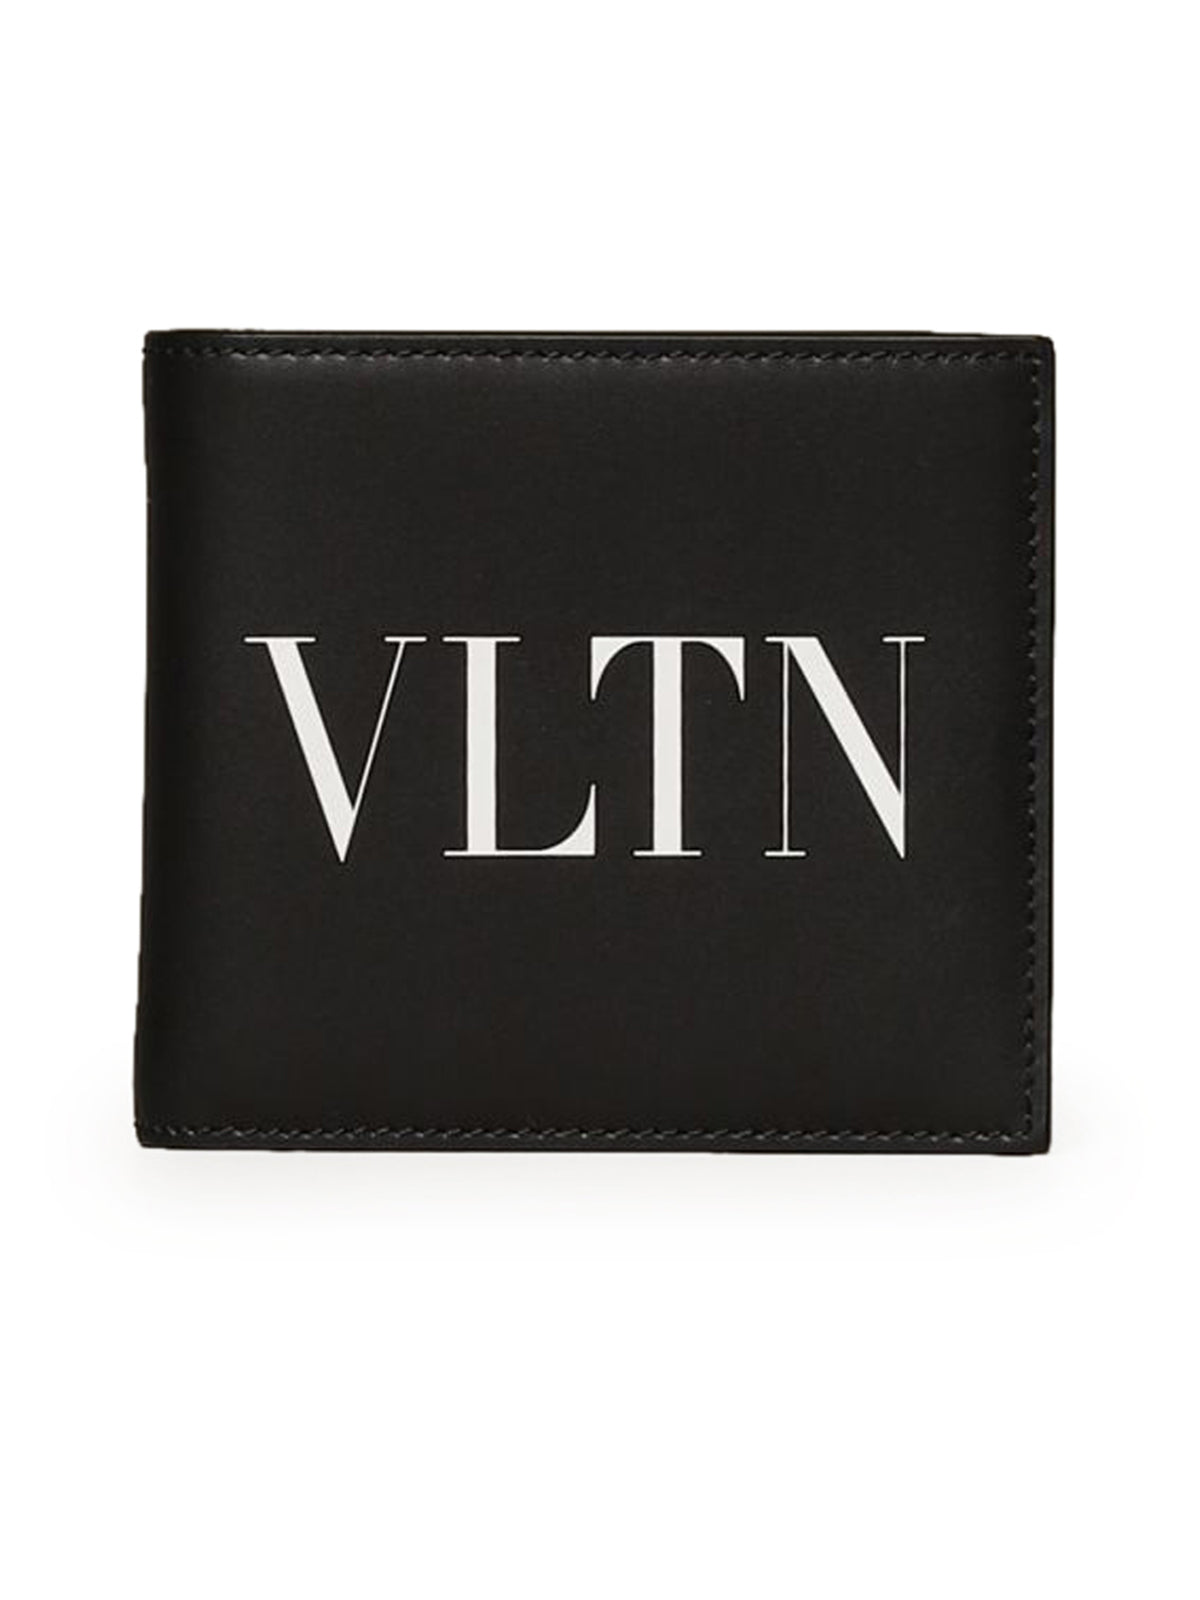 VLTN leather bifold wallet